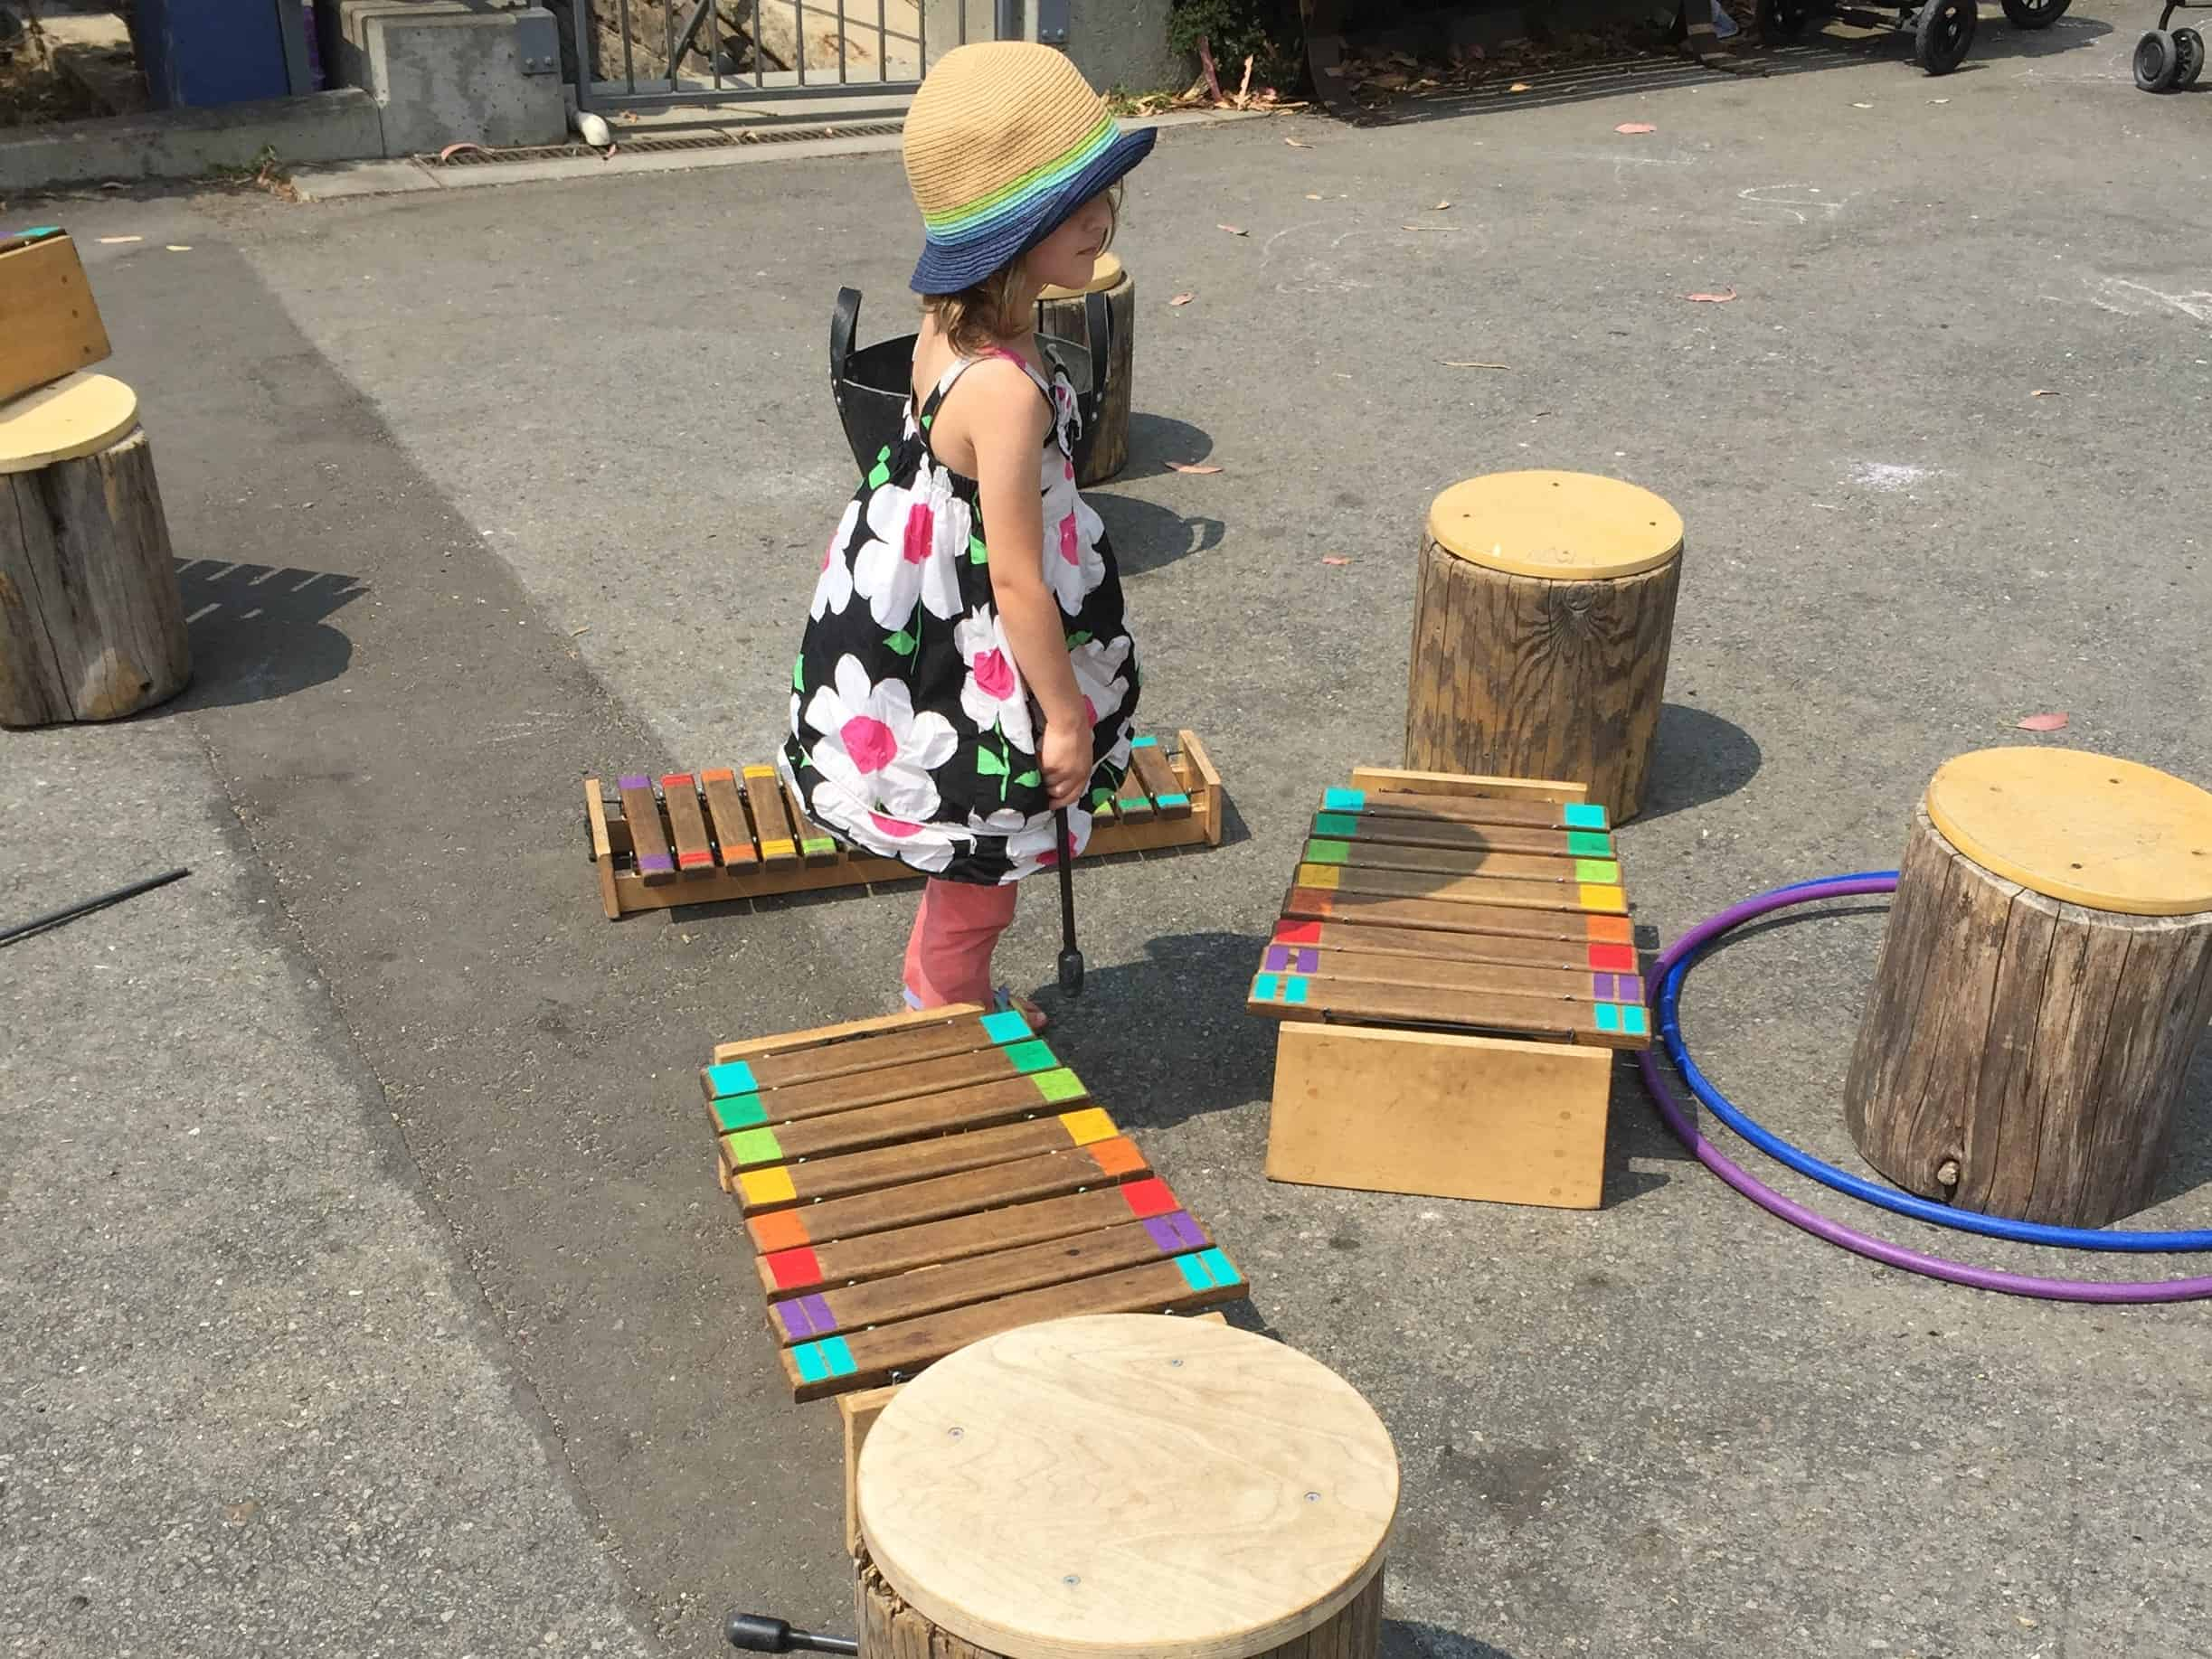 Looking for fun things to do in San Francisco with kids? Traveling with children is hard. Here are things to do in san francisco with toddlers, young kids and even babies. #sanfrancisco